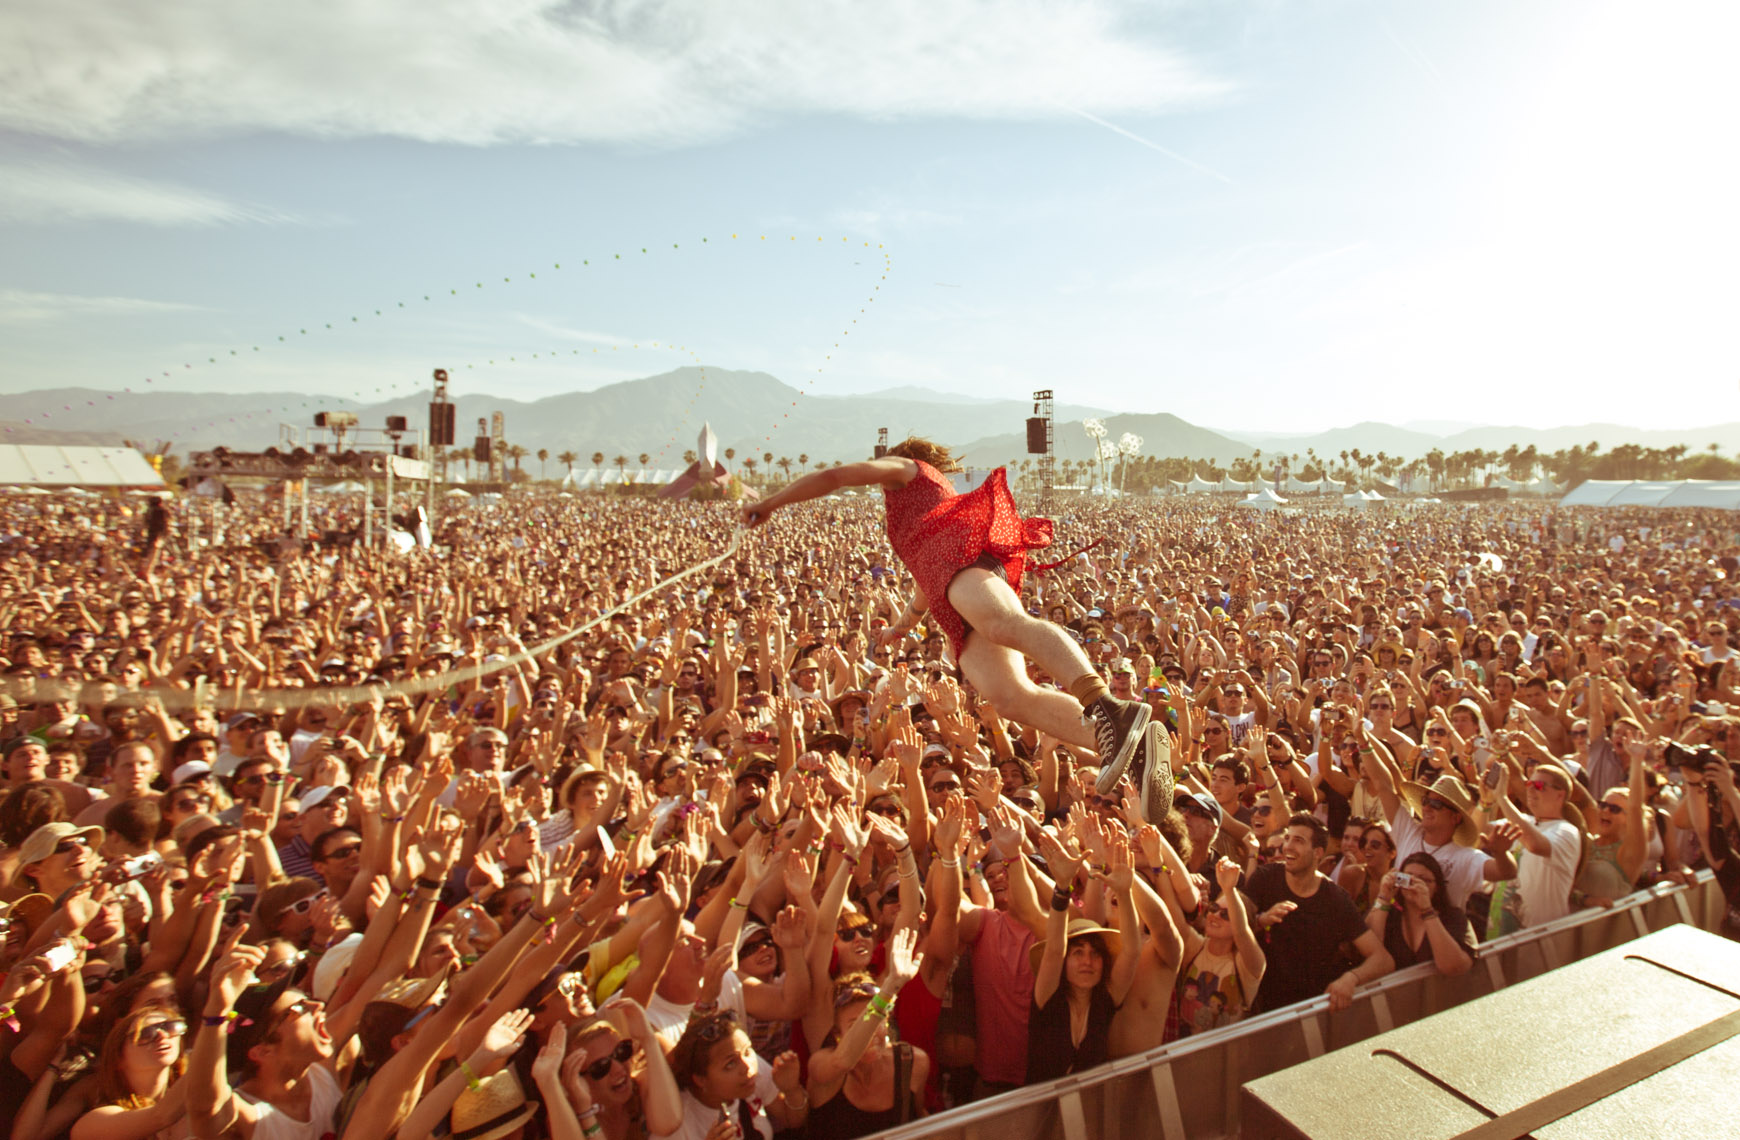 music-Cage the Elephant at Coachella music festival by Forest Woodward photograph